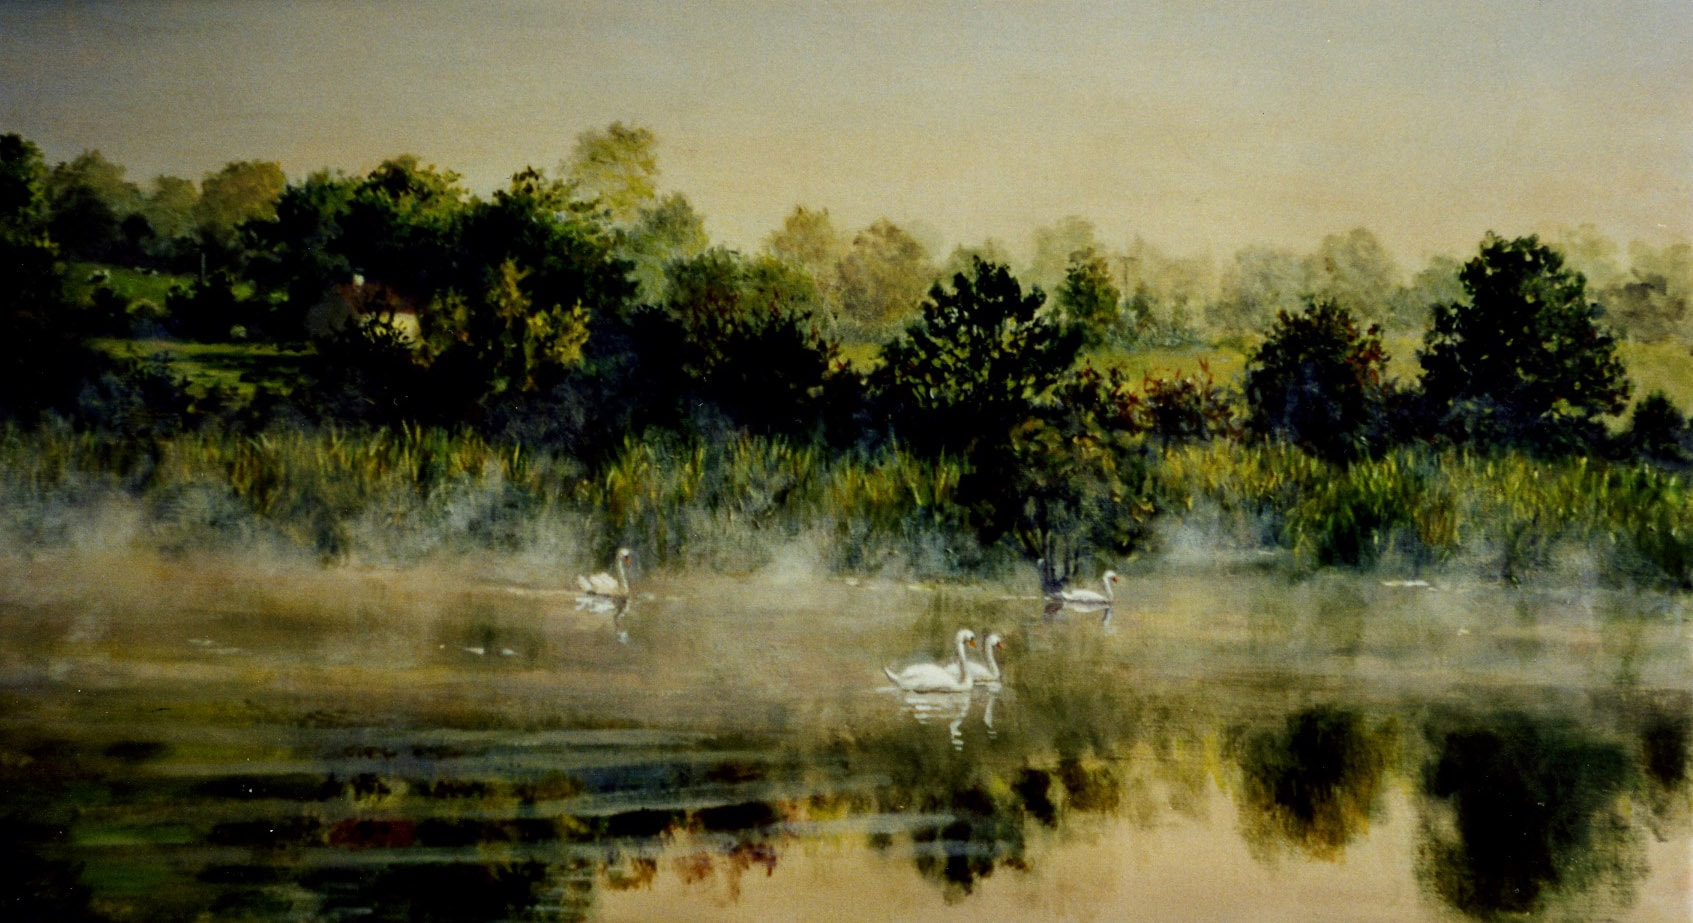 Two Swans on the Bandon River 1987 Oil on Panel 16 x 20